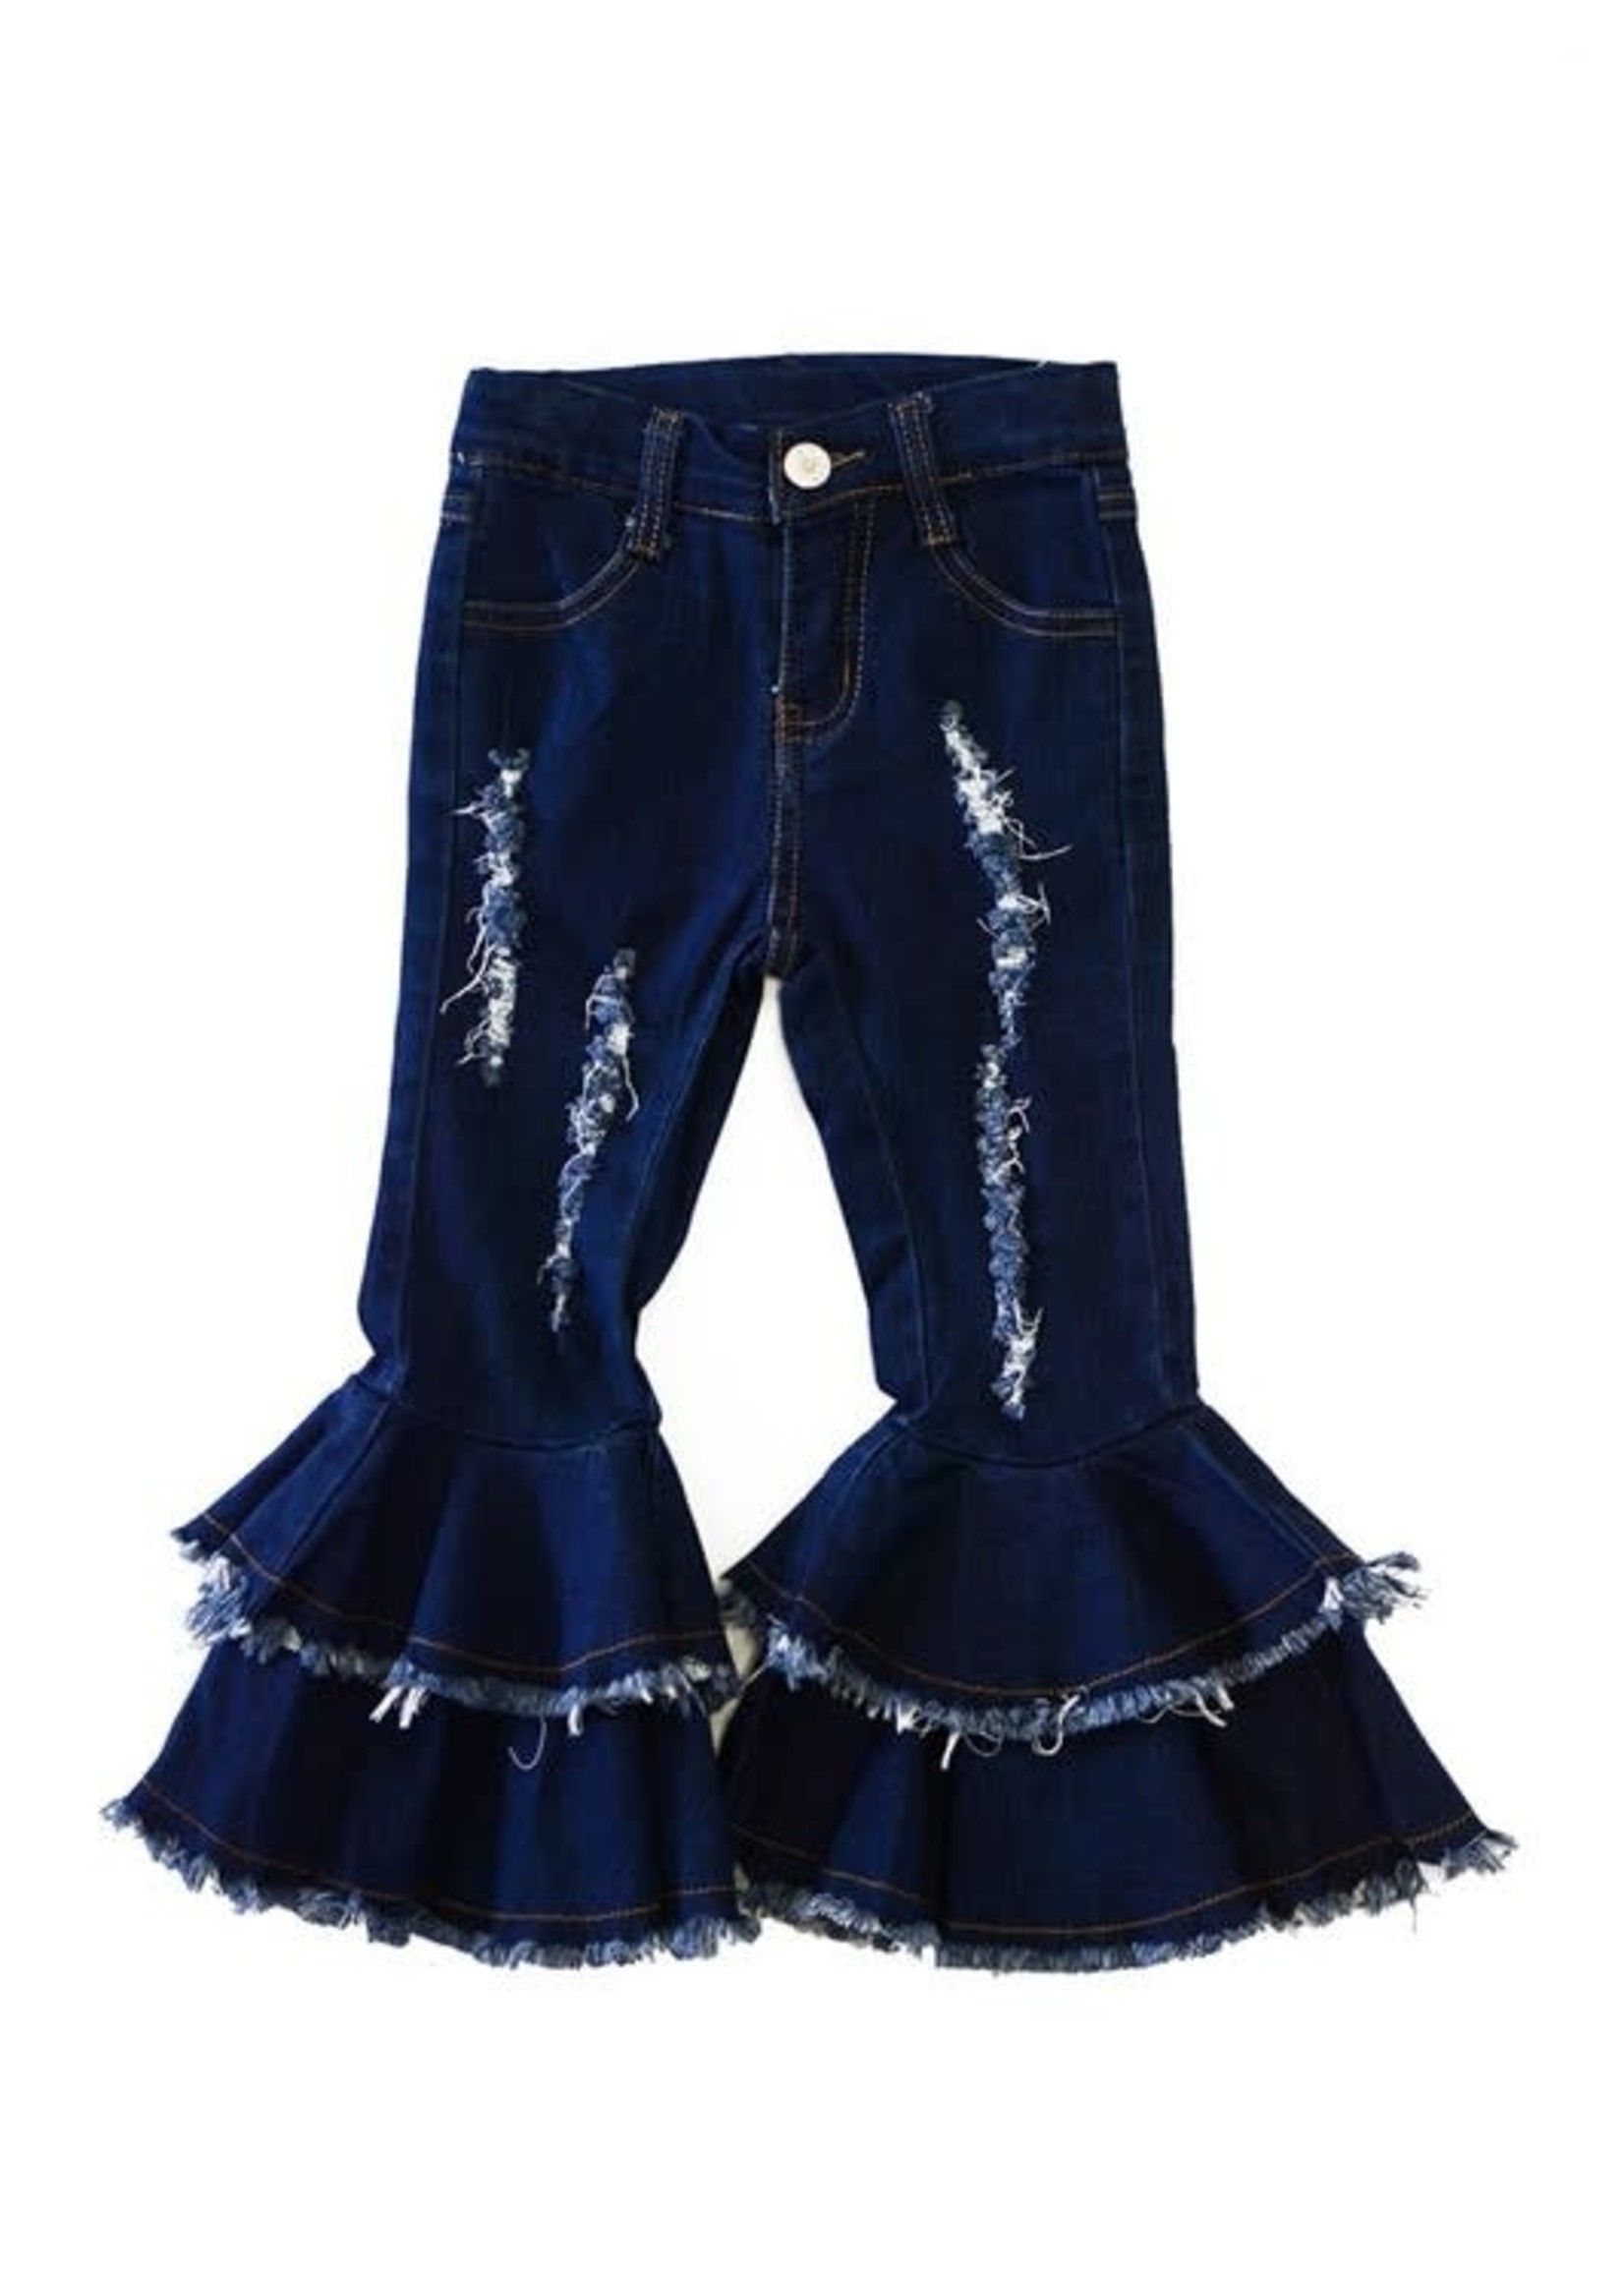 Double Layer Distressed Bell Bottoms